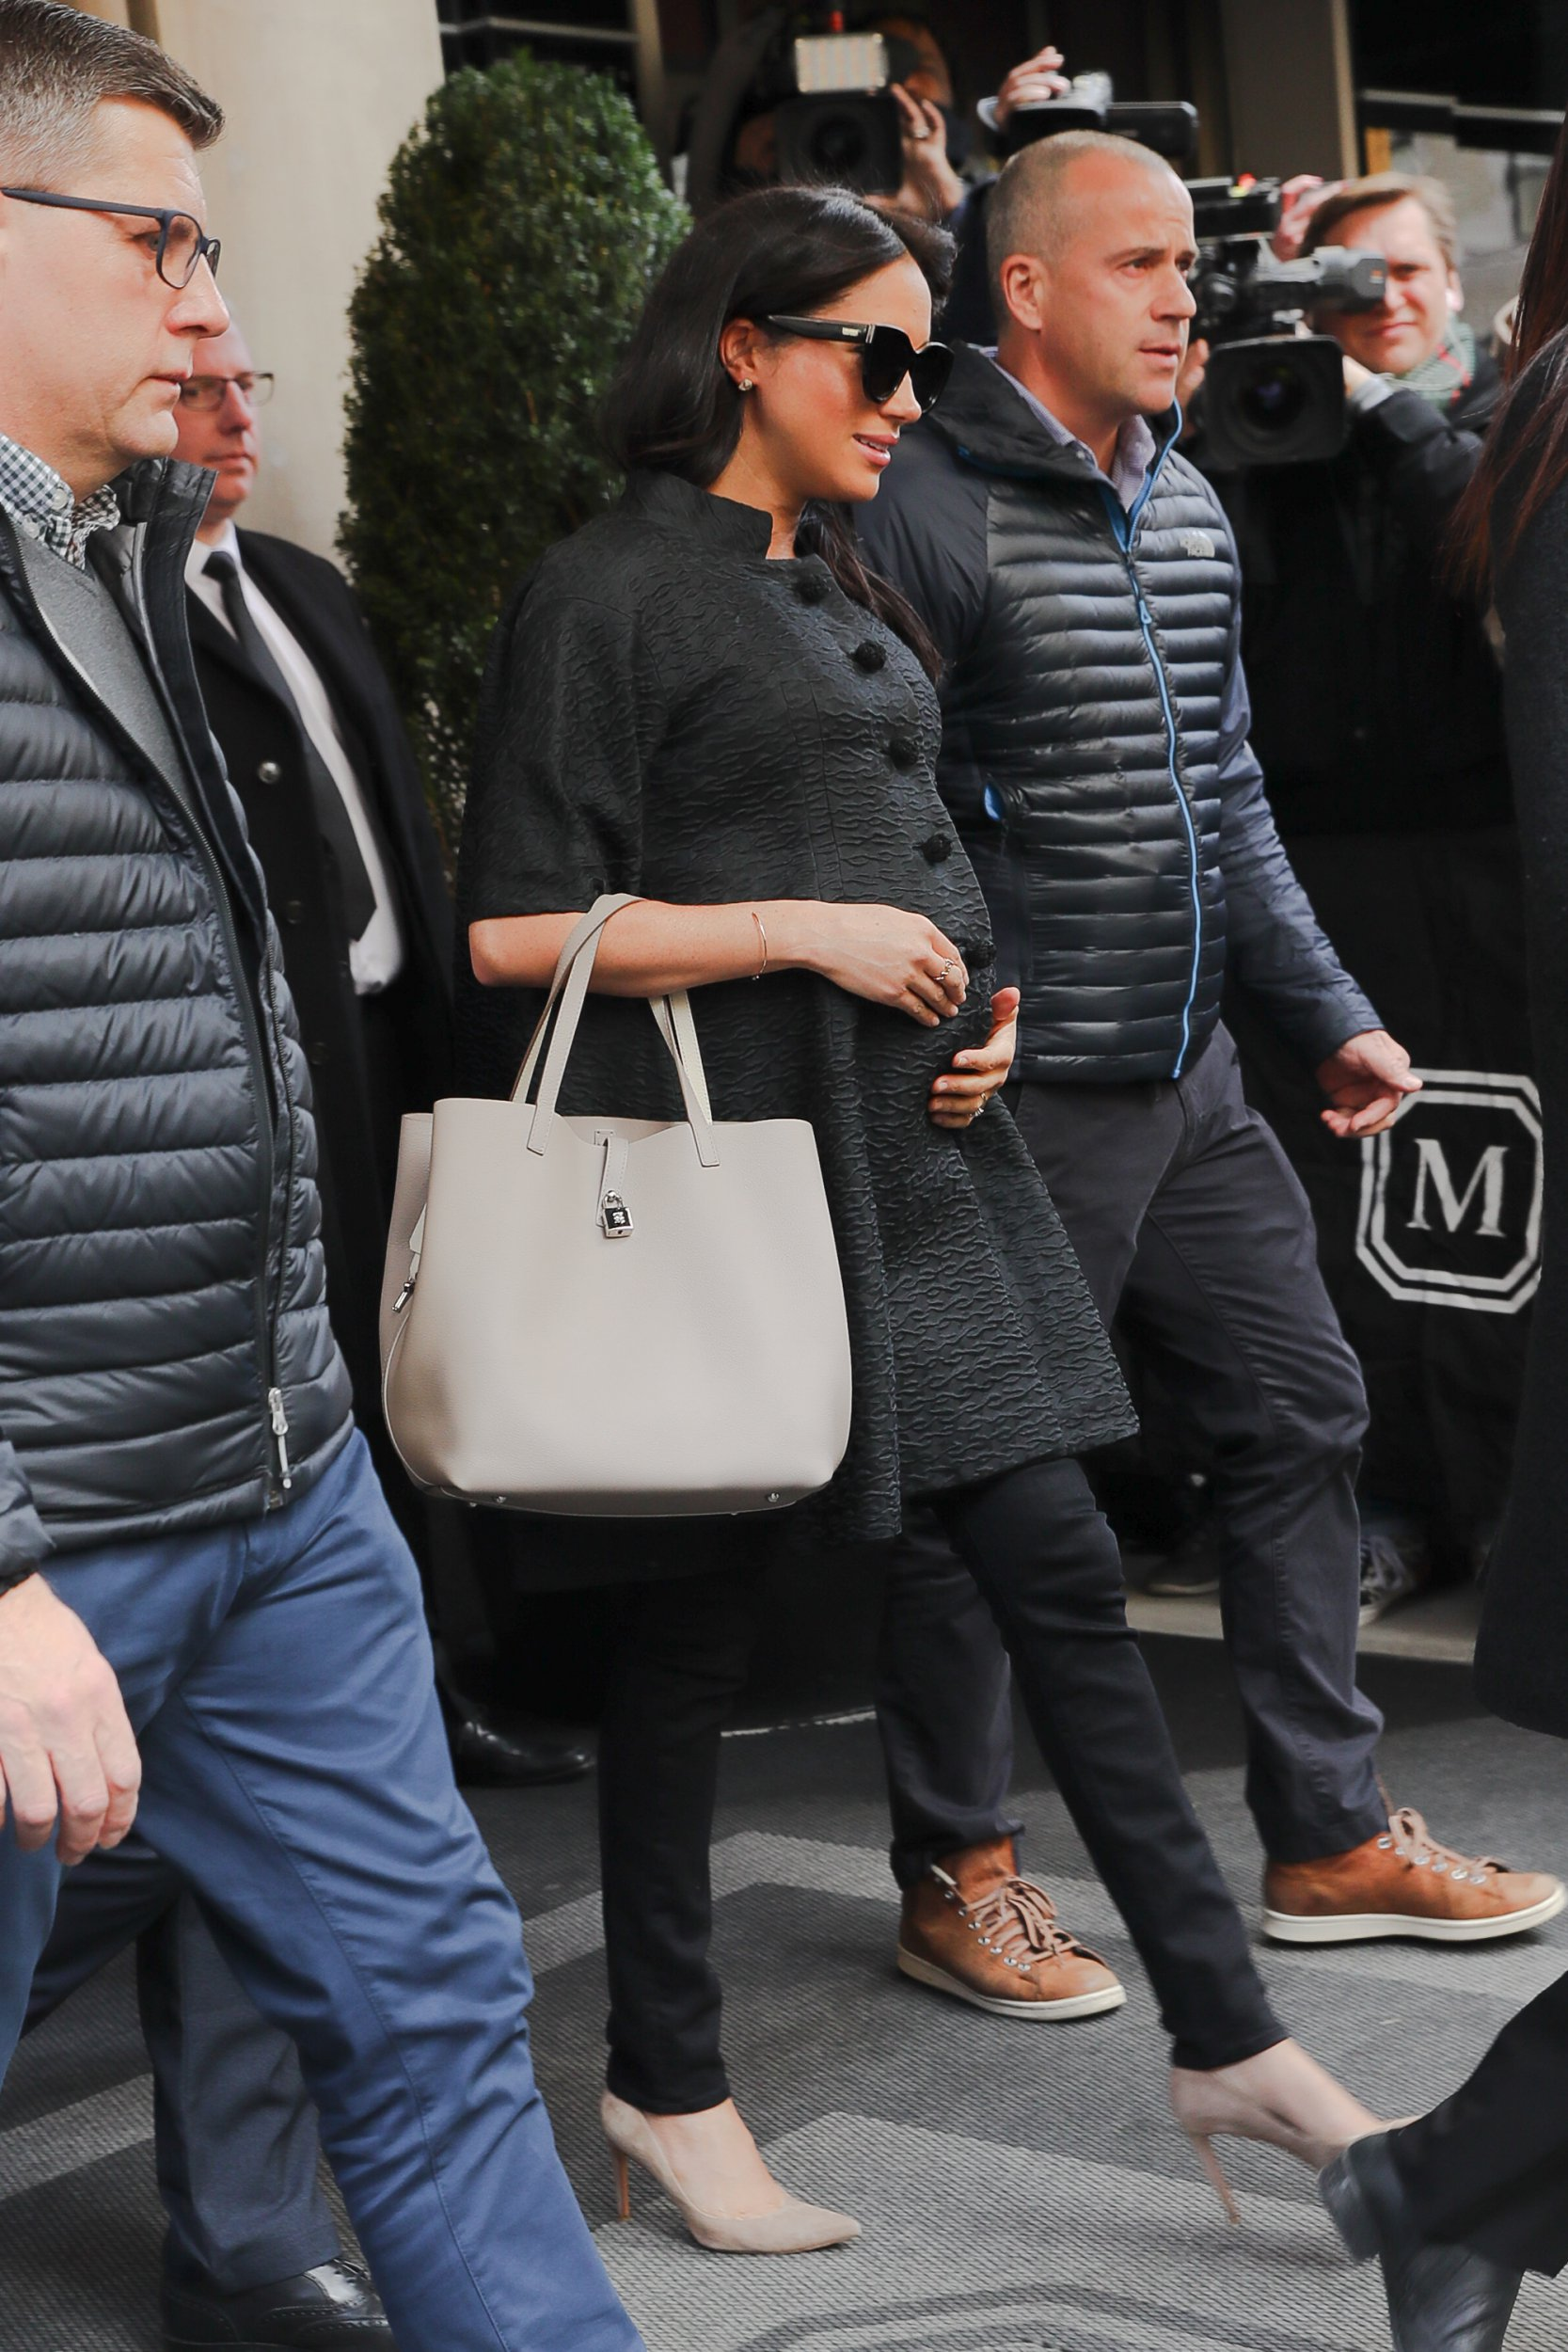 Meghan Markle seen holding her belly while leaving her hotel in NYC. 19 Feb 2019 Pictured: Meghan Markle. Photo credit: MEGA TheMegaAgency.com +1 888 505 6342